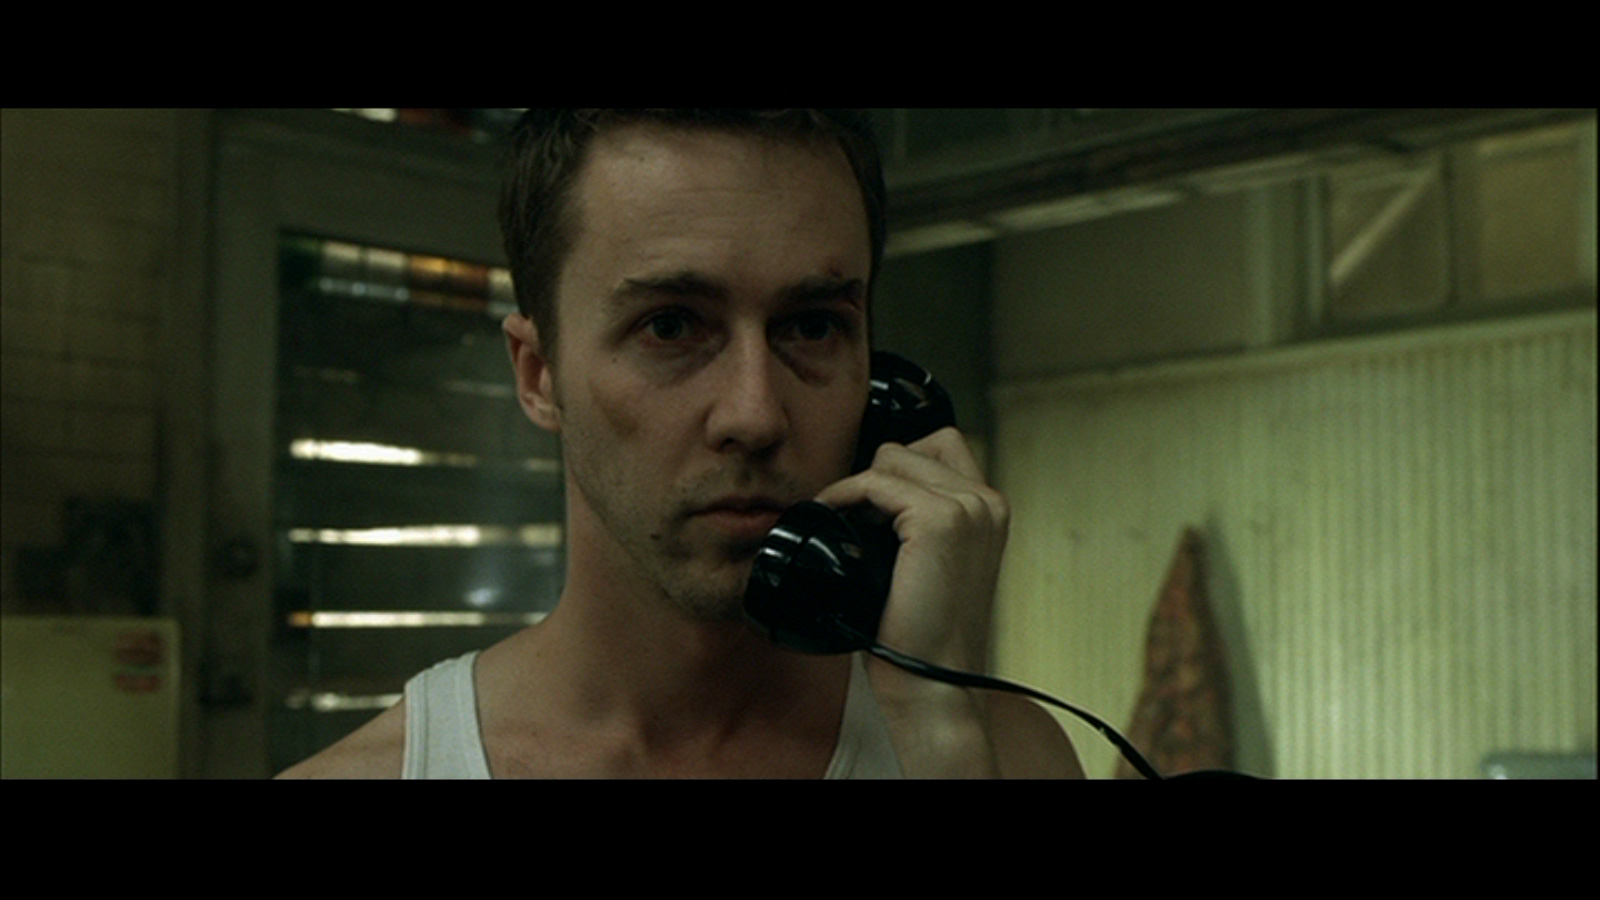 Edward in Fight Club